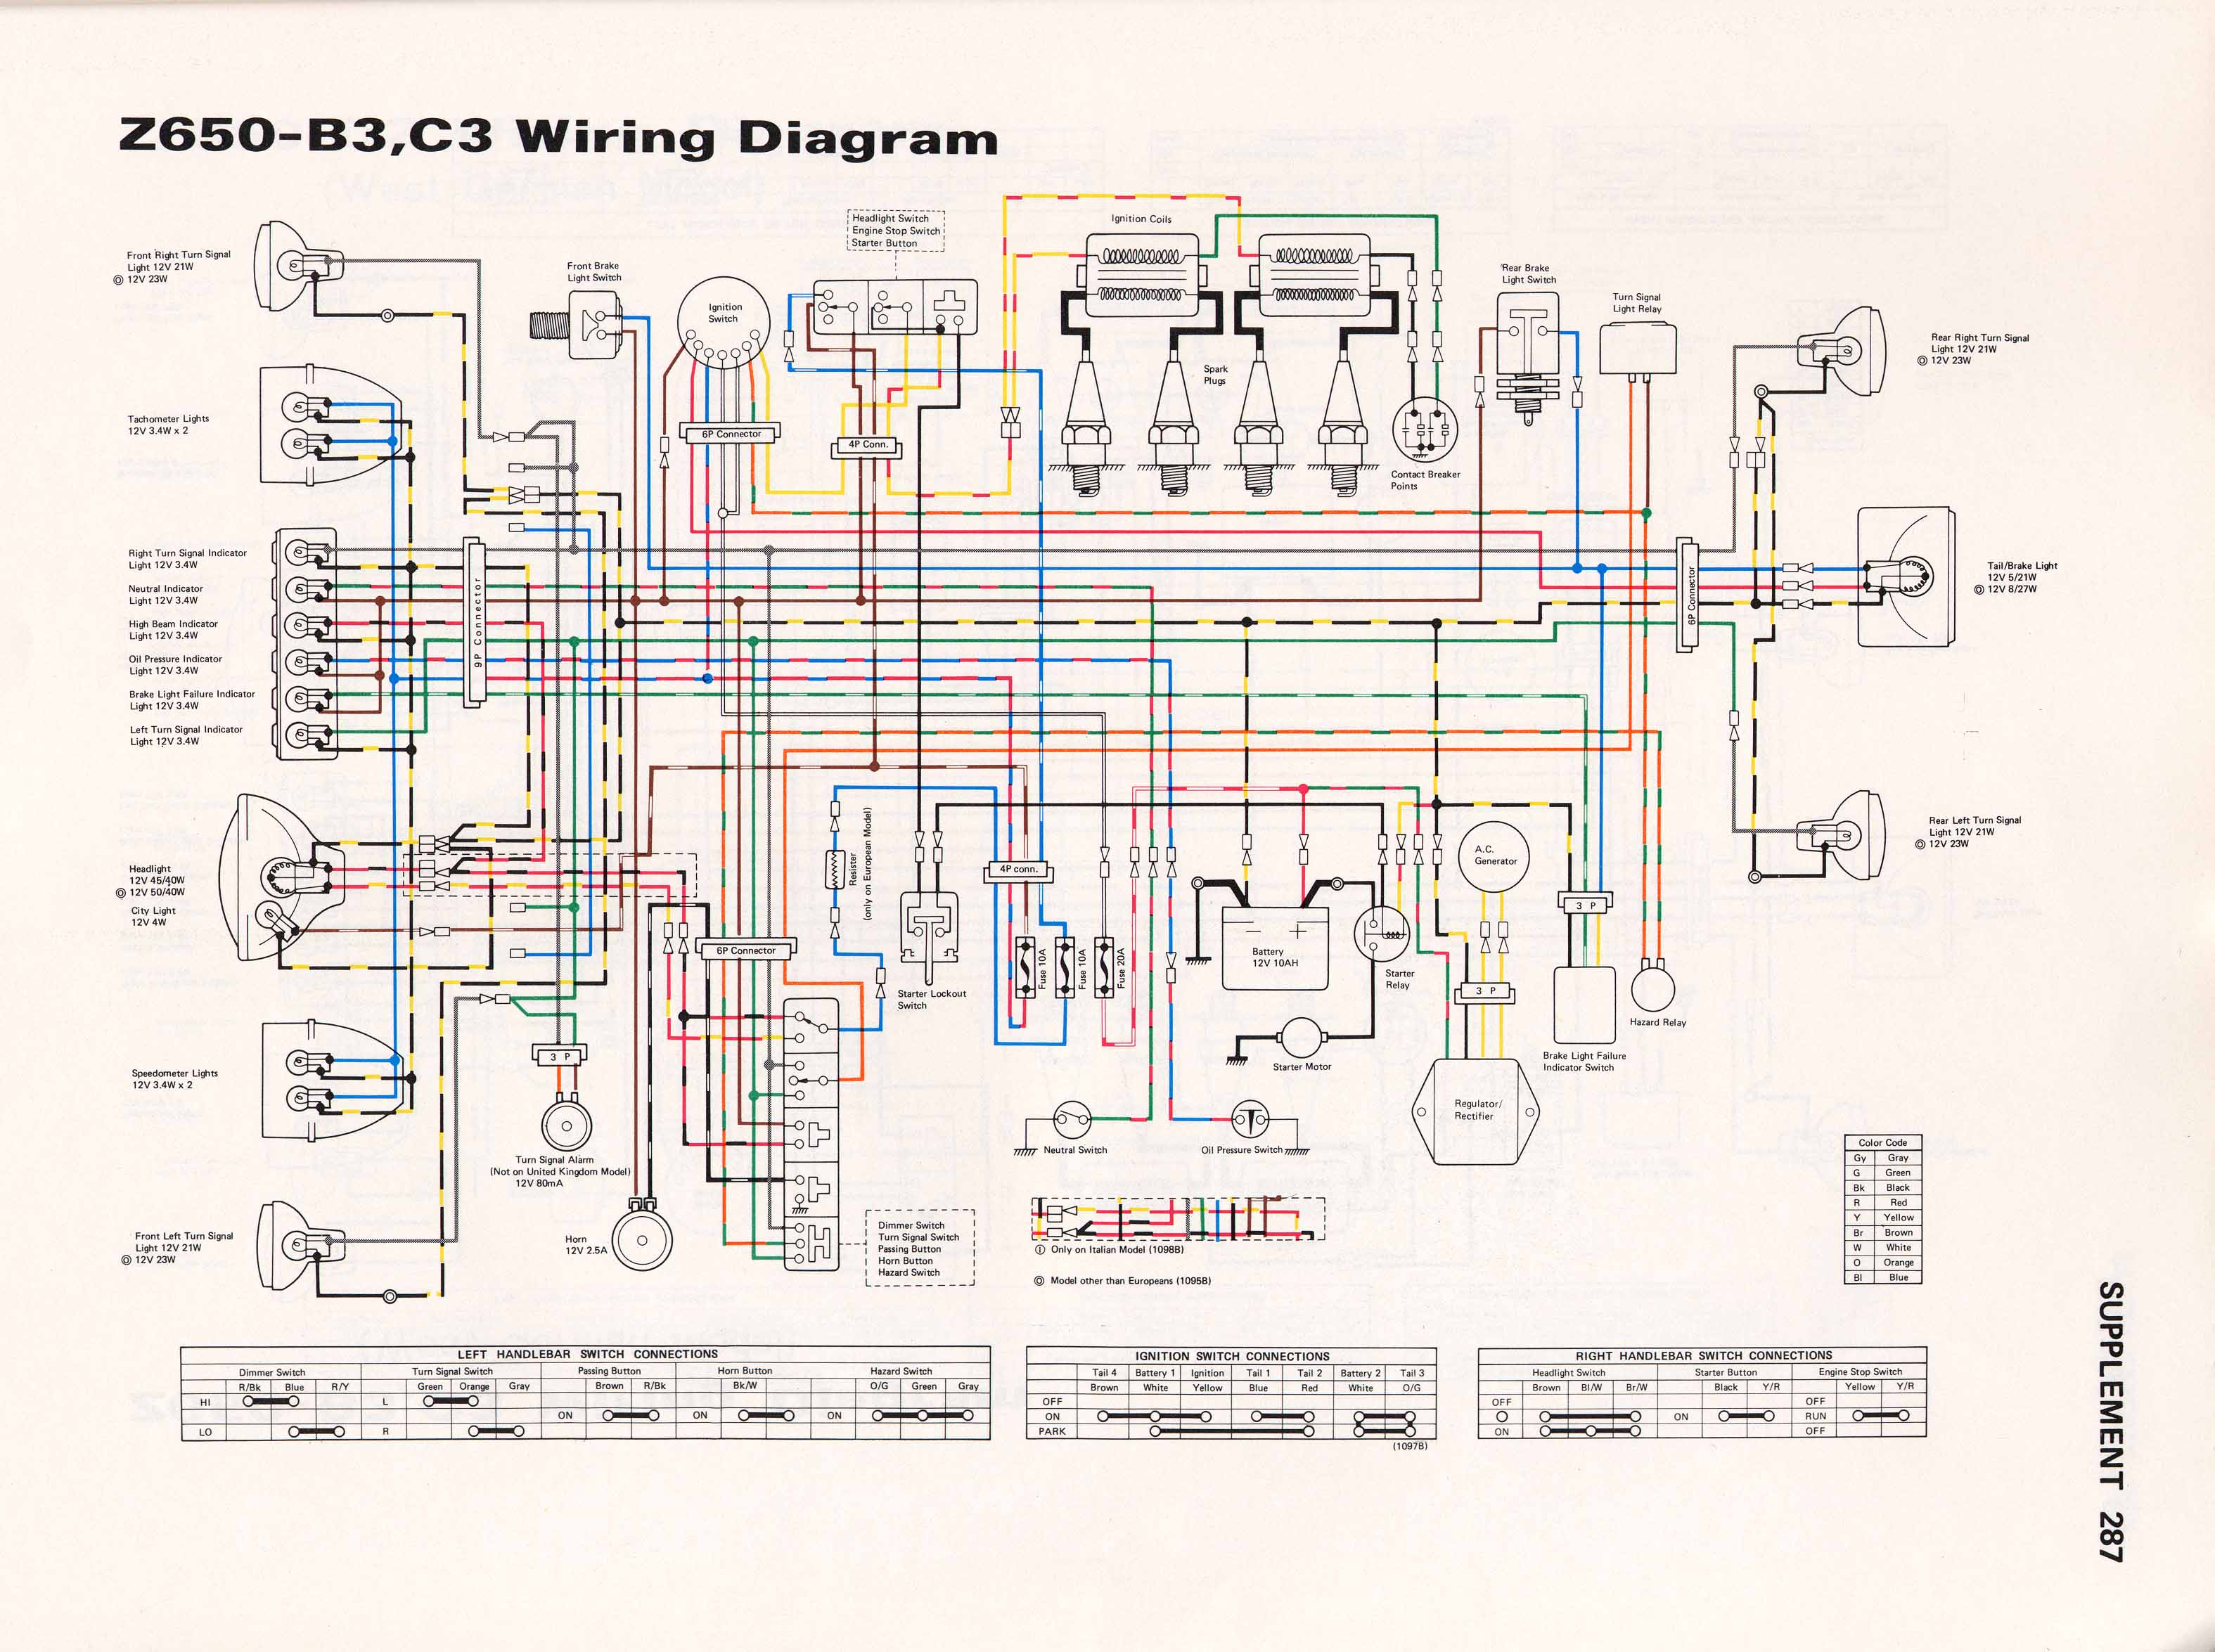 Kz650info Wiring Diagrams Kawasaki Zrx Diagram Free Picture Schematic Z650 B3